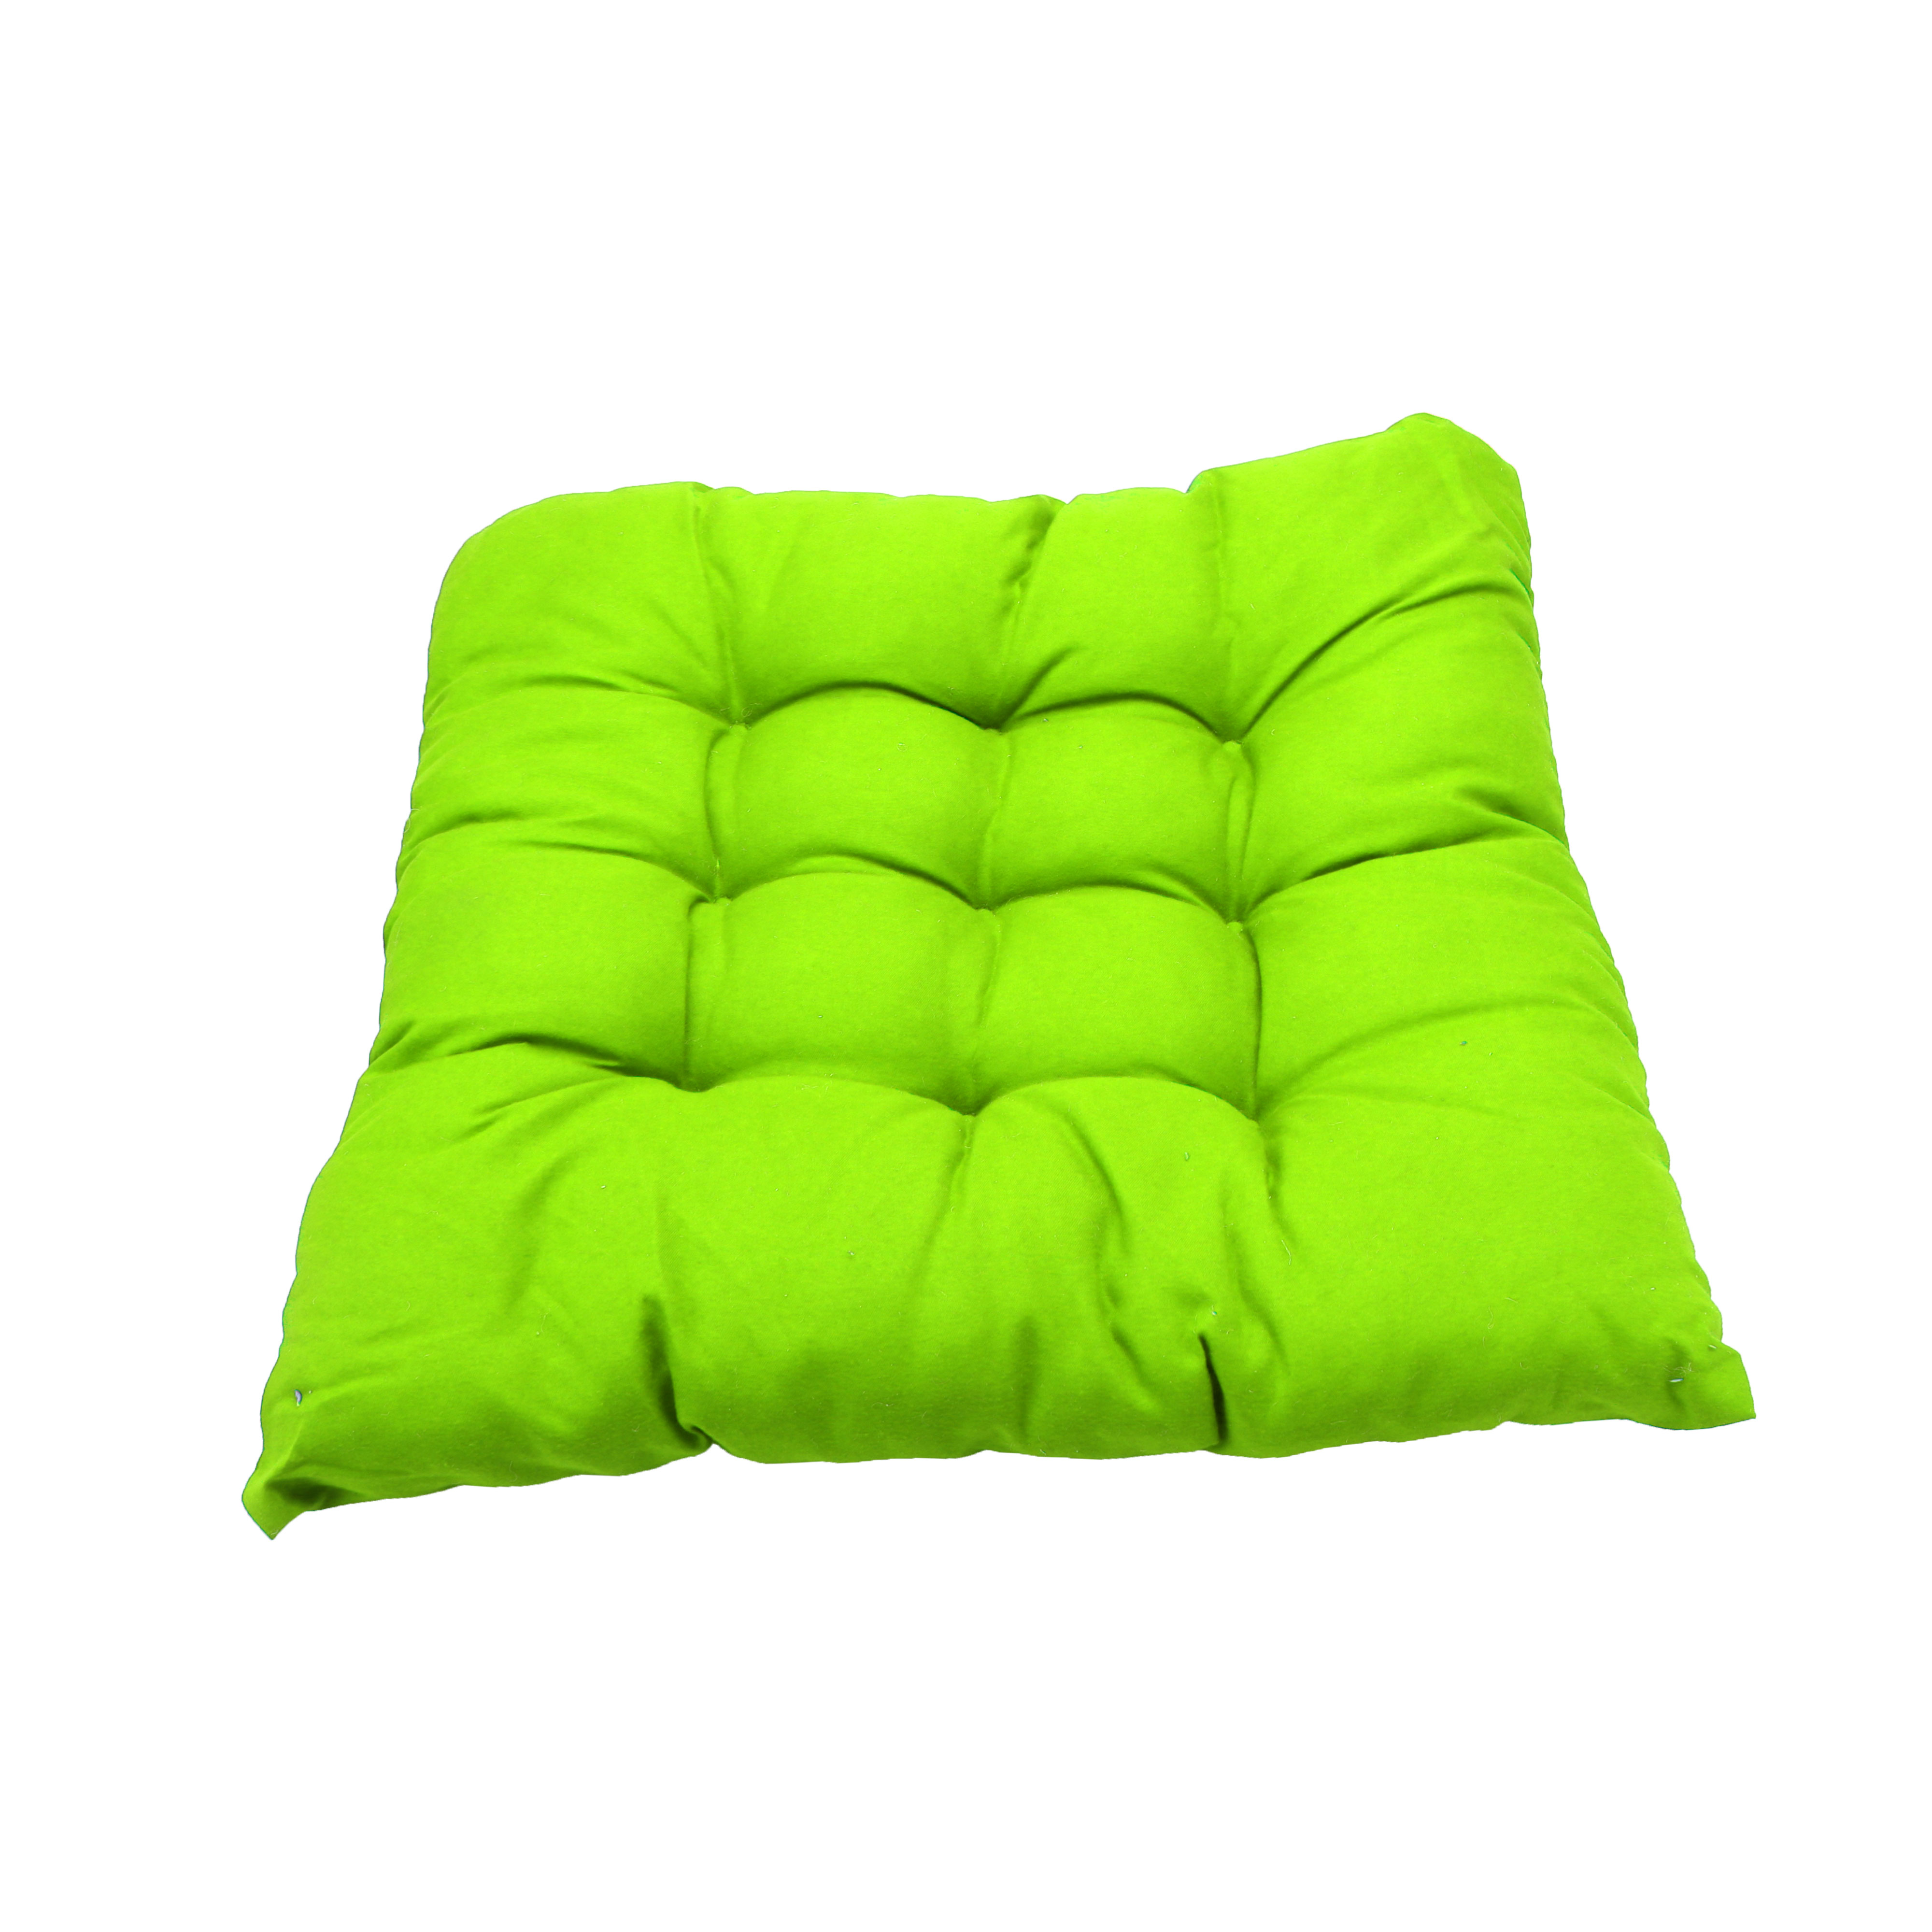 Home Vehicle Accessory Cotton Blends Strap Design Chair Seat Cushion Pad Lime Green